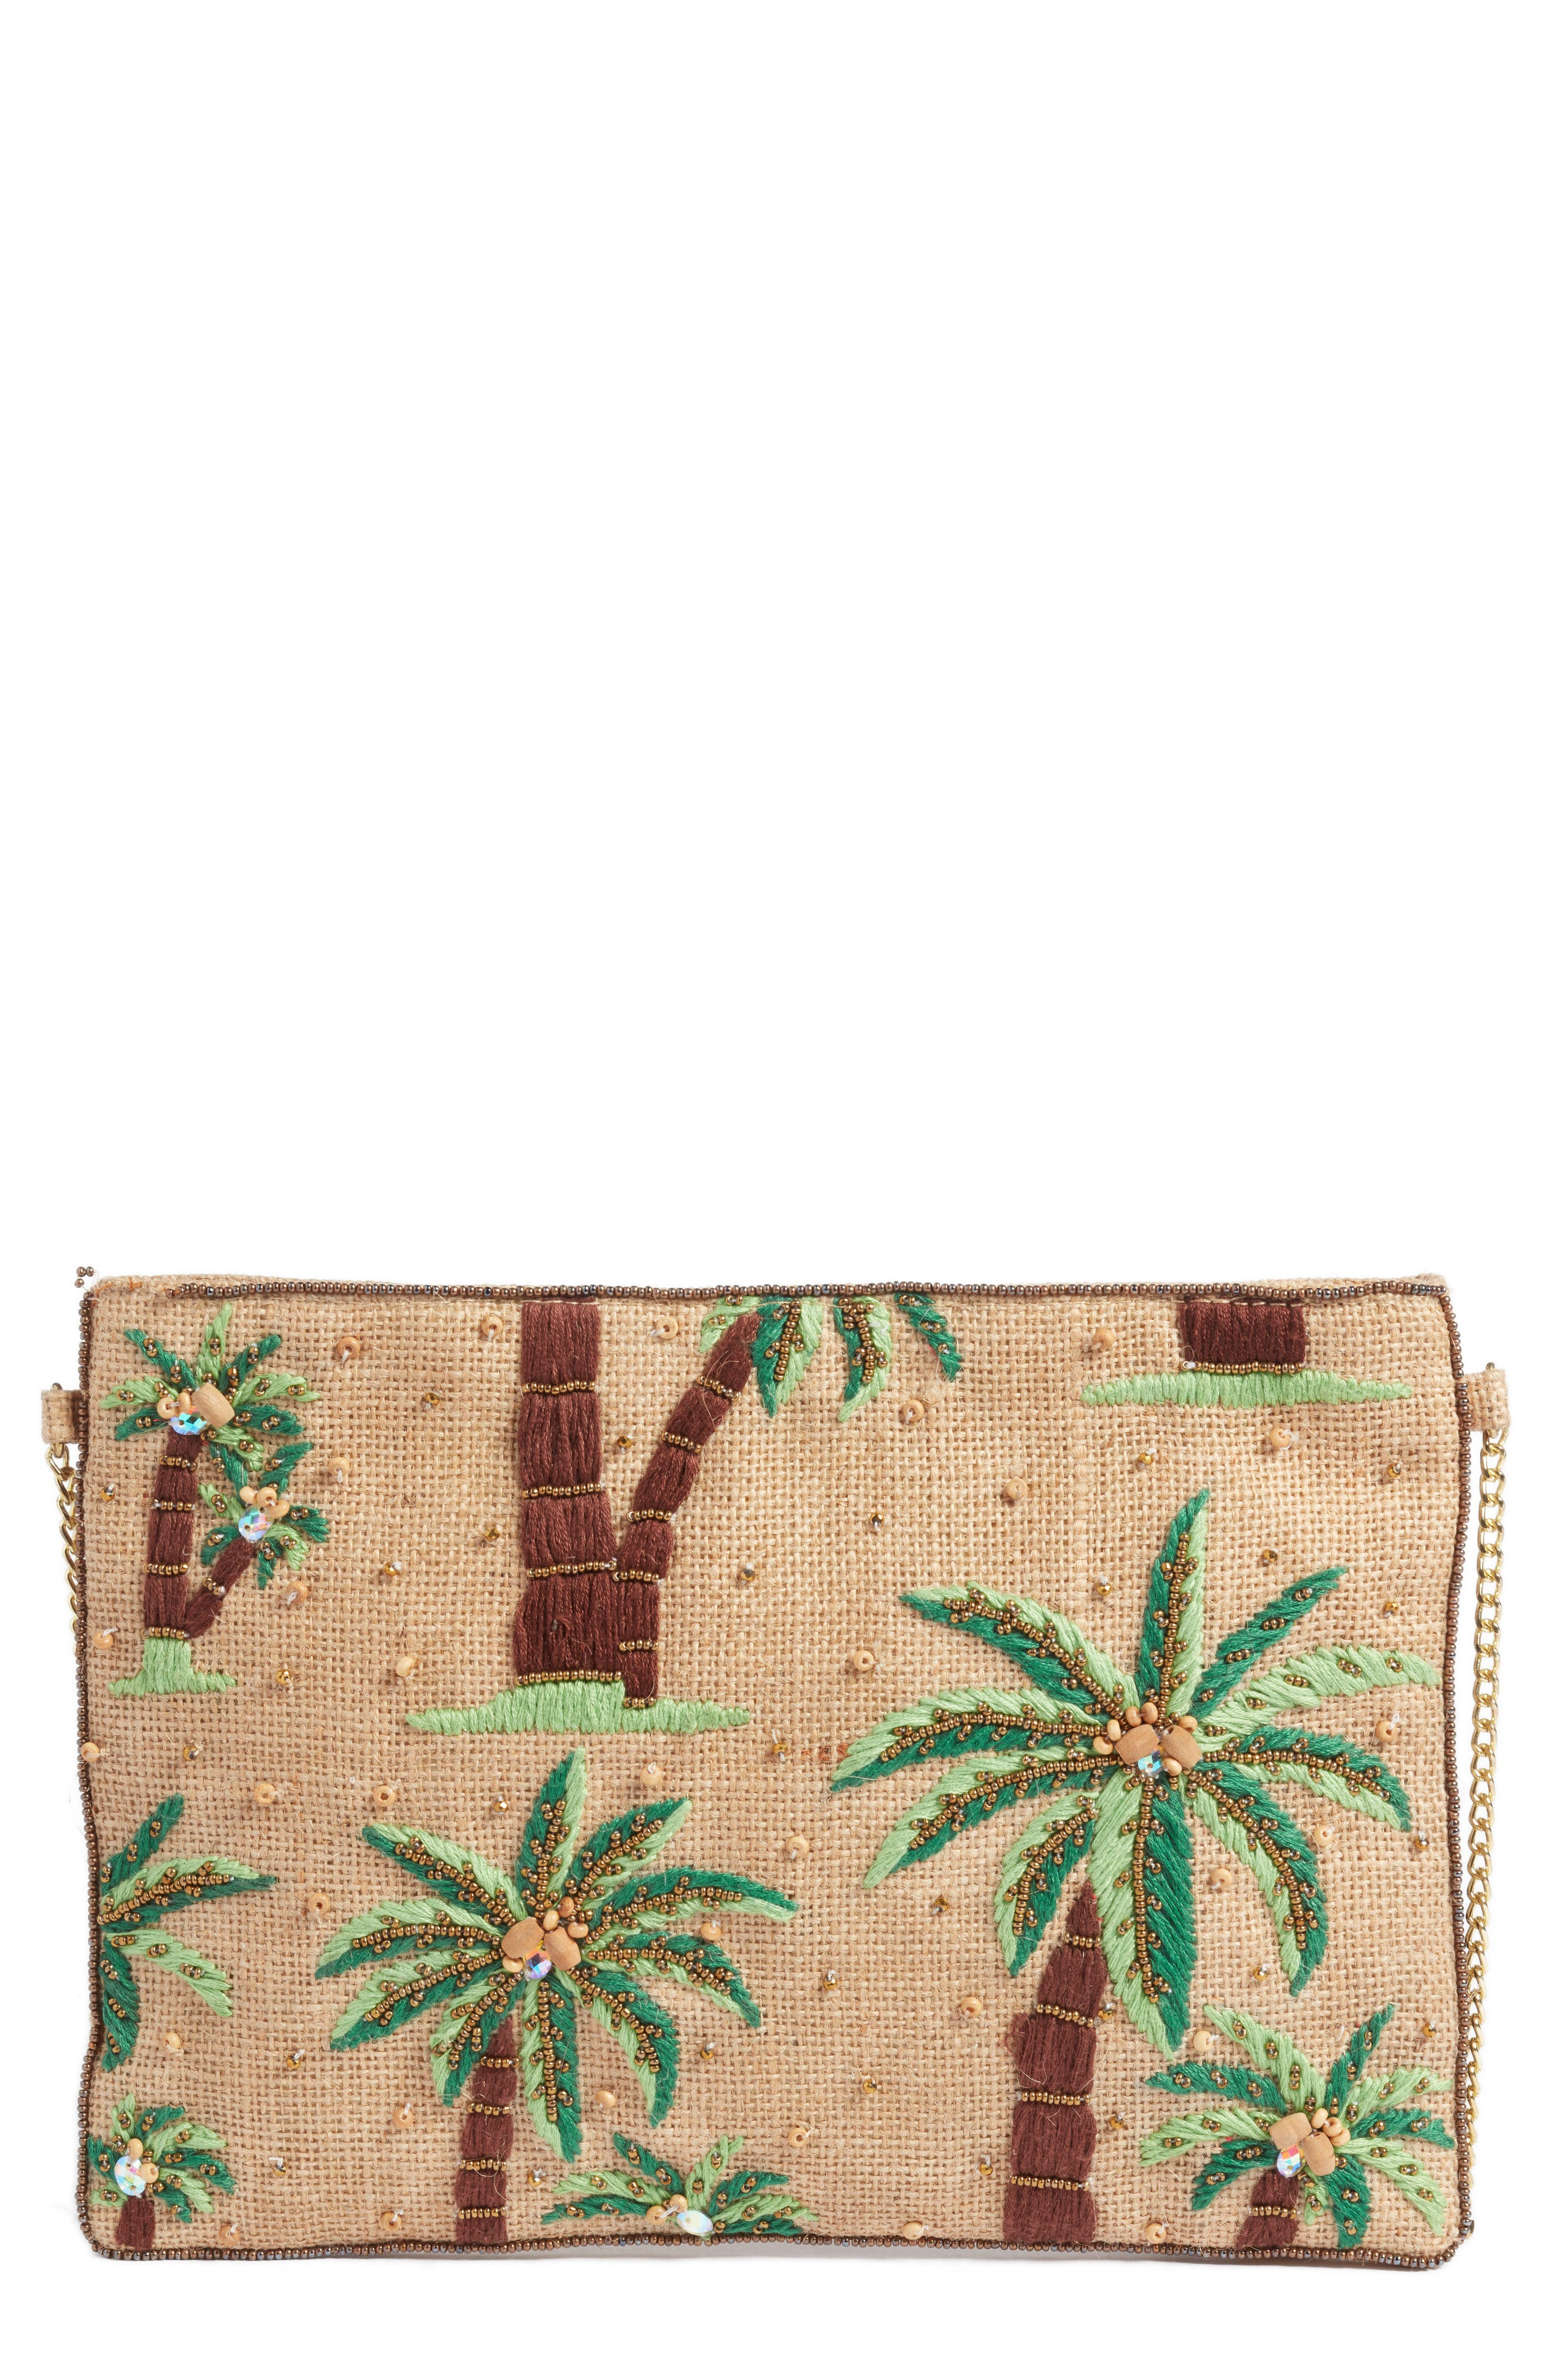 AREA STARS Embroidered Palm Tree Crossbody Bag - Pink in Natural